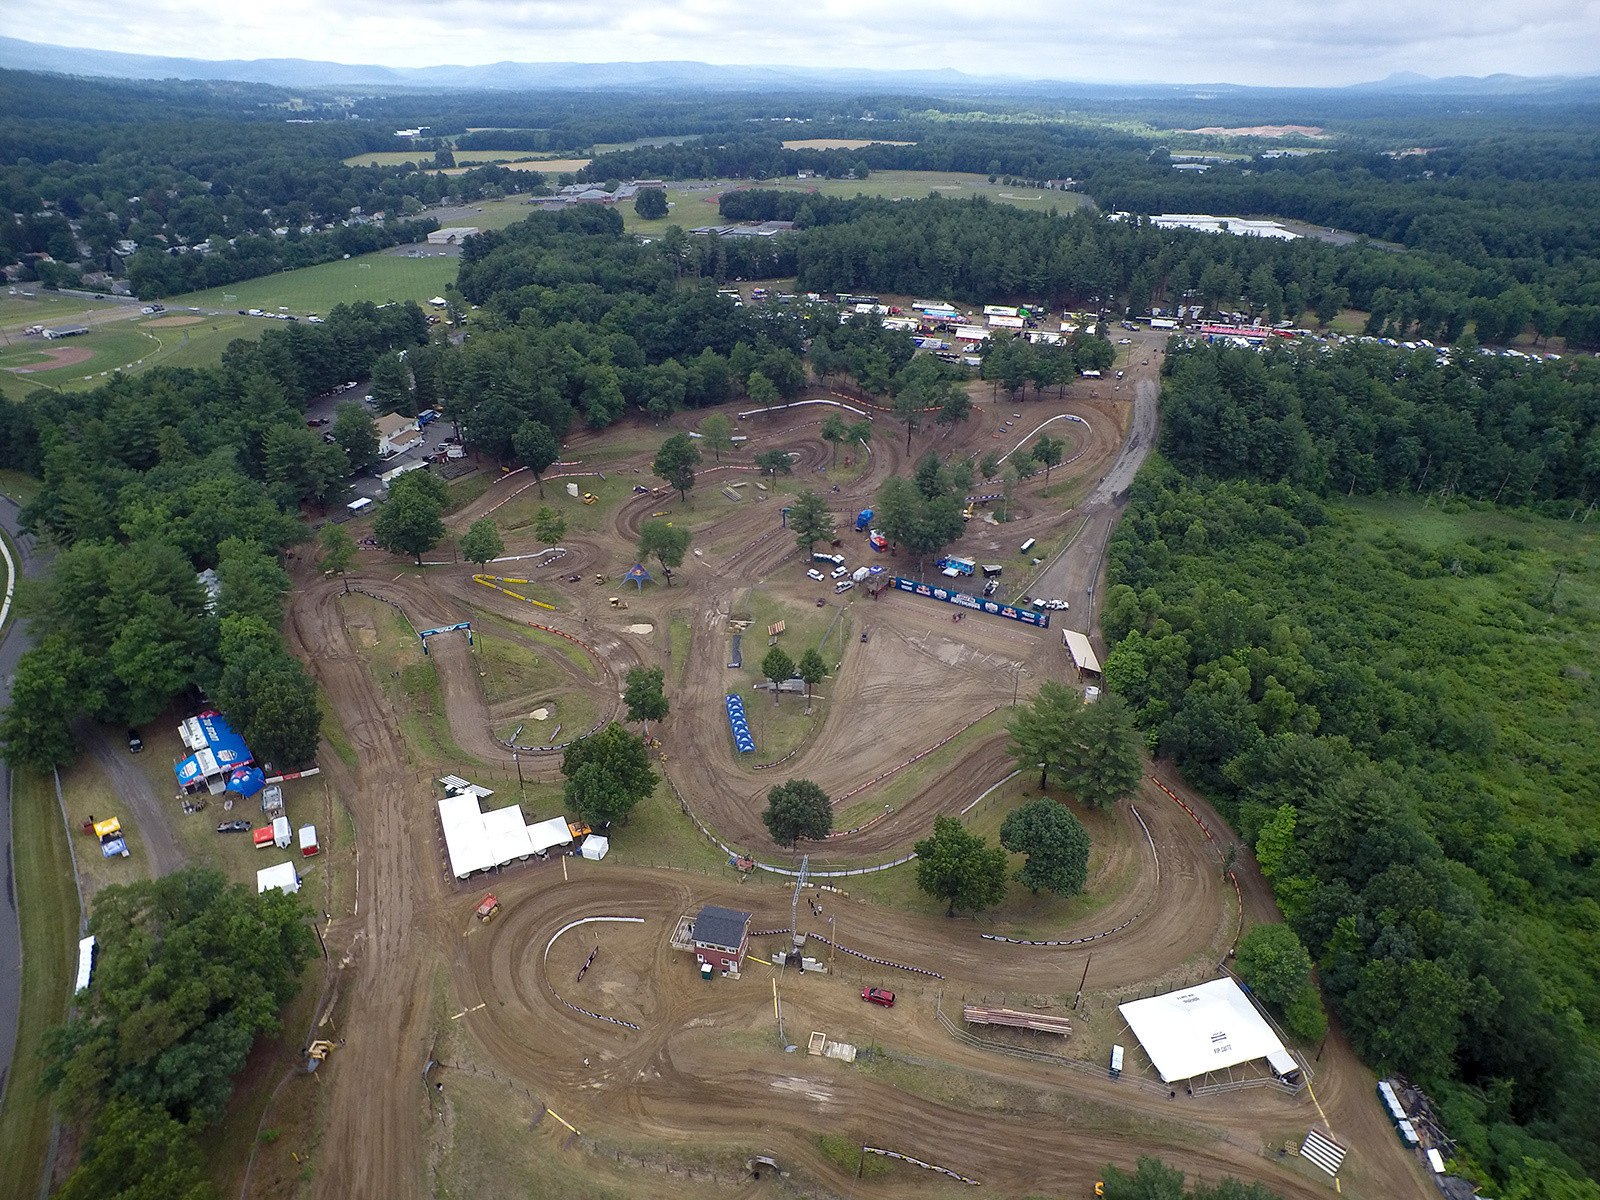 "Southwick was in great shape for this year's annual visit. Checking in with John Dowd, he said they'd brought in about 30 loads of new sand...pretty much all they could get their hands on. While the riders said they still feel the base (and we saw a few spots where it was evident), there's no doubt this is the most ""different"" racing surface we hit during the Nationals all year. Interestingly, RedBud may be second in that category, since it does have some big sandy sections, and varies from side-to-side in the material used for the track surface."